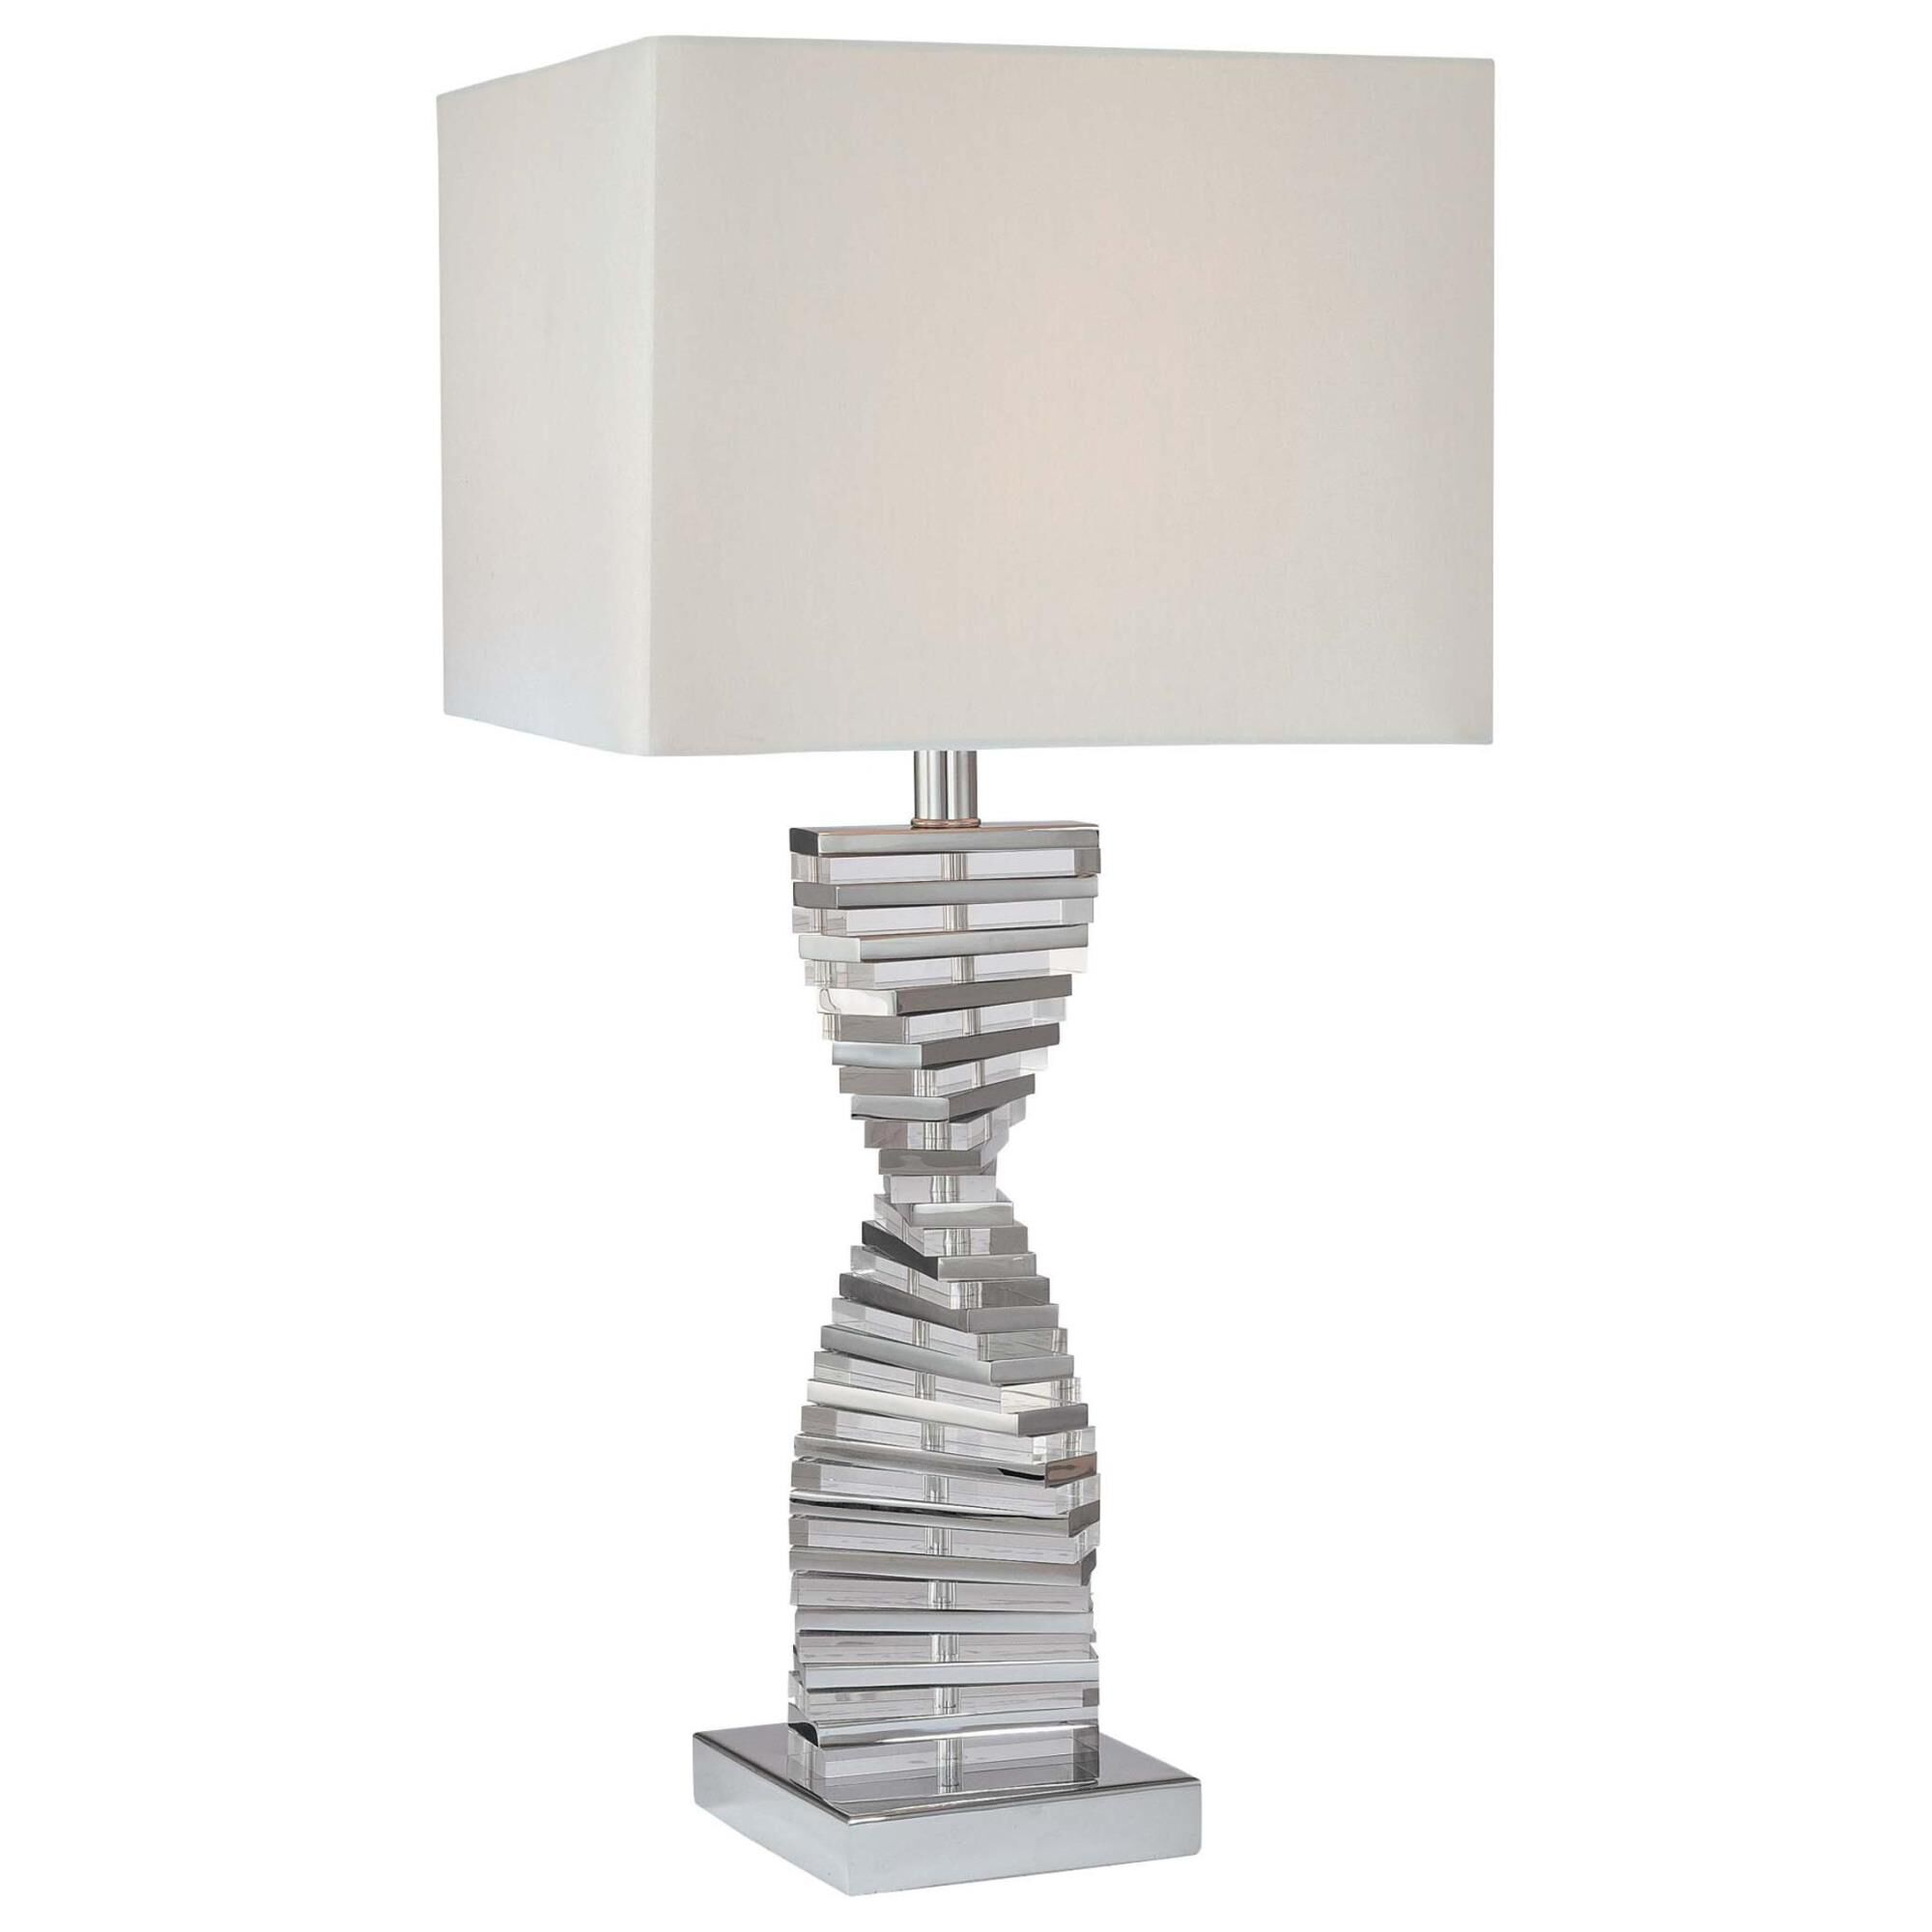 Kovacs 30 Inch Table Lamp - P742-077 - Modern Contemporary